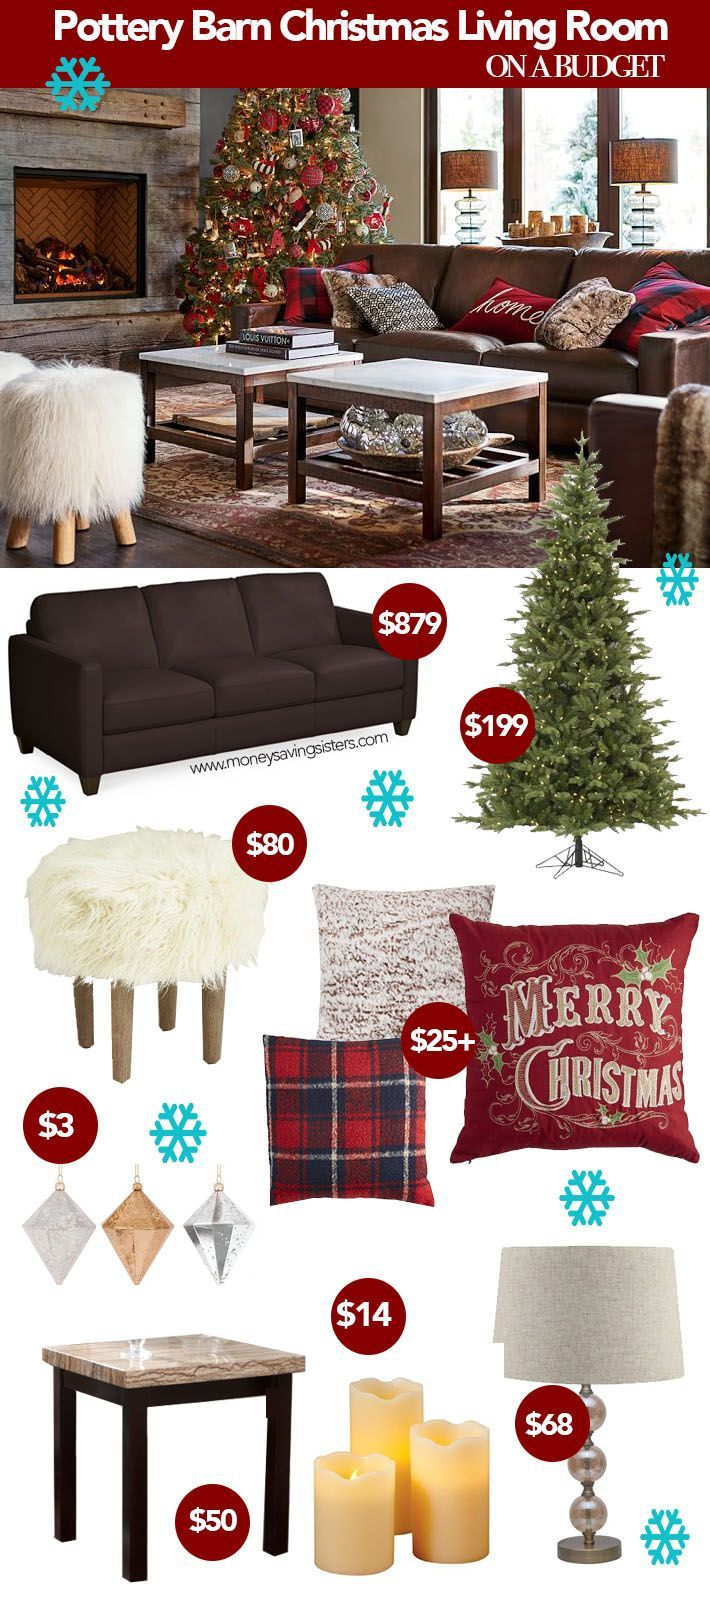 328 Best Pottery Barn Christmas Images On Pinterest Christmas Decor Pottery Barn Christmas